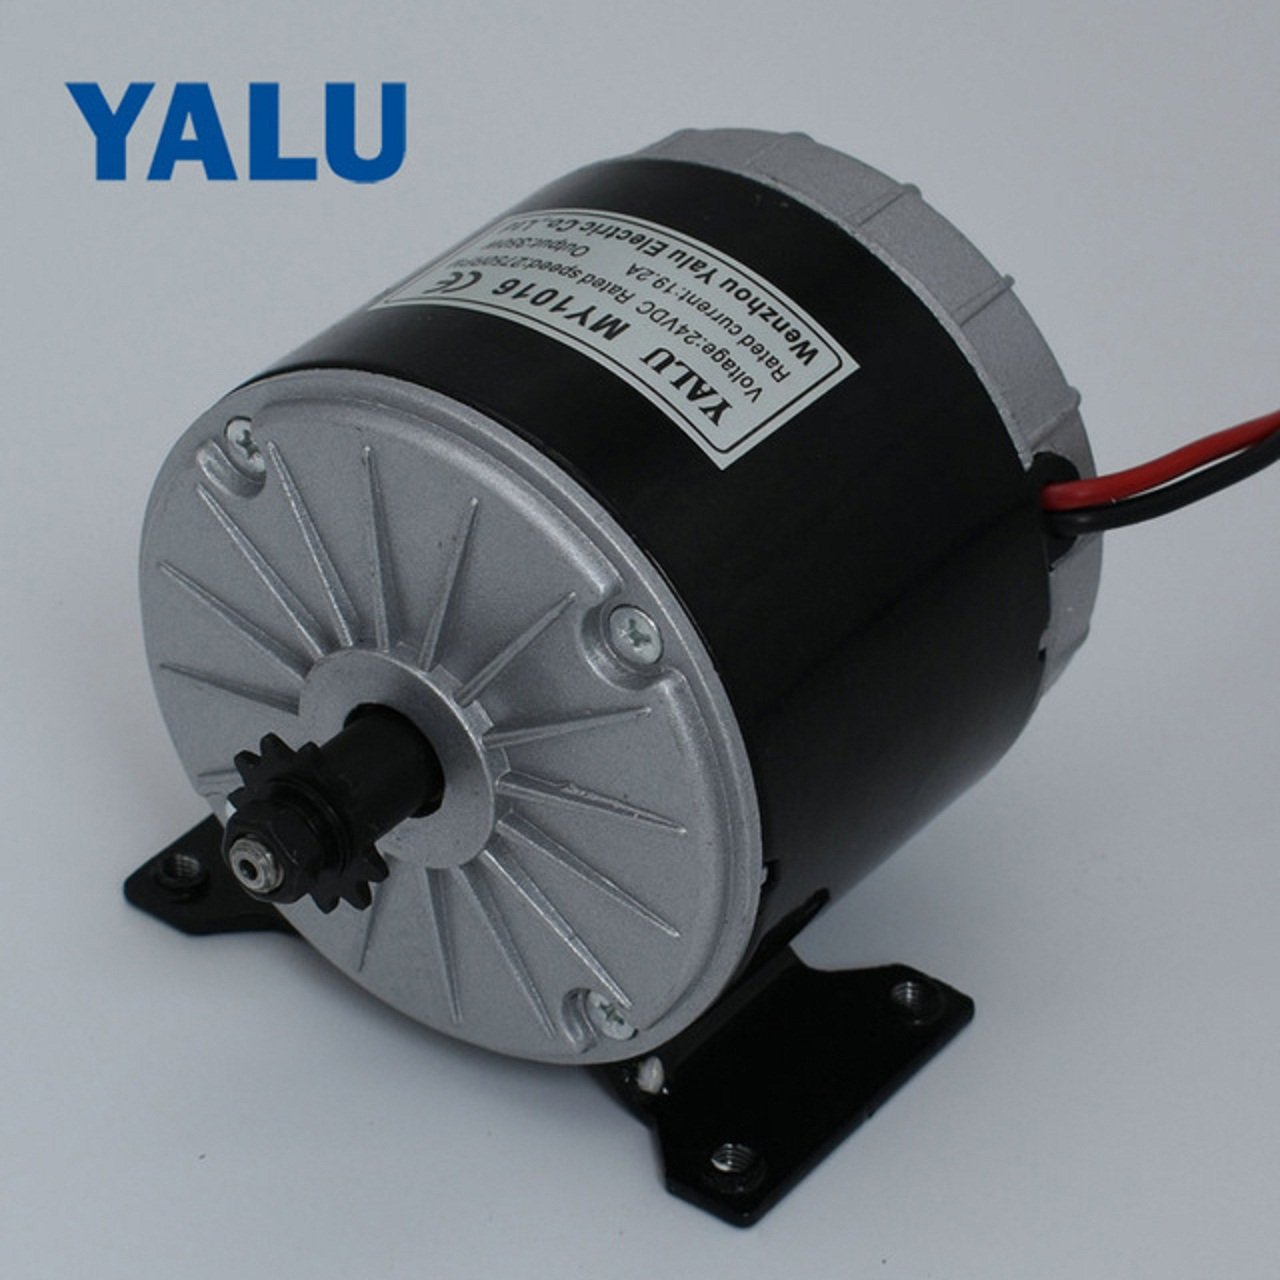 Buy 24v Motor 250 W My1016 For Electric Bike Tricycle Dc Power Wiring In Addition Car Conversion Kits And Black Silver Online At Low Prices India